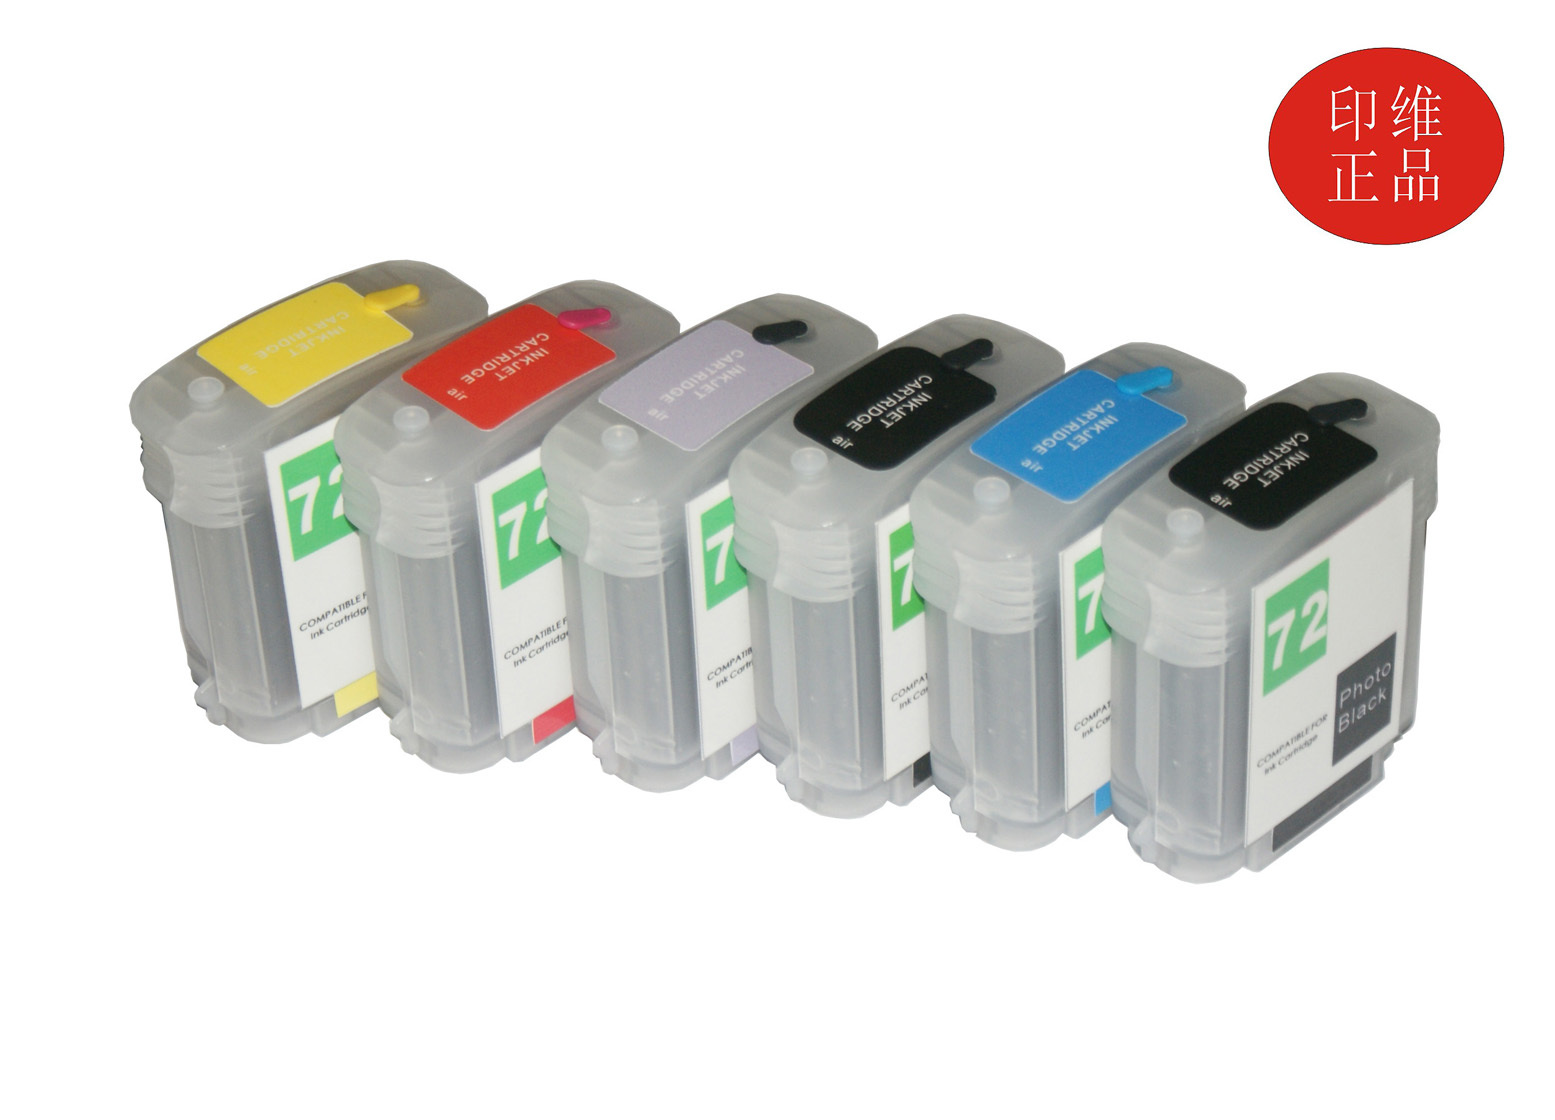 Indian peacekeeping hp hp t1200 replacement cartridges filled cartridges 72 cartridges t1200 ink containing can be reset